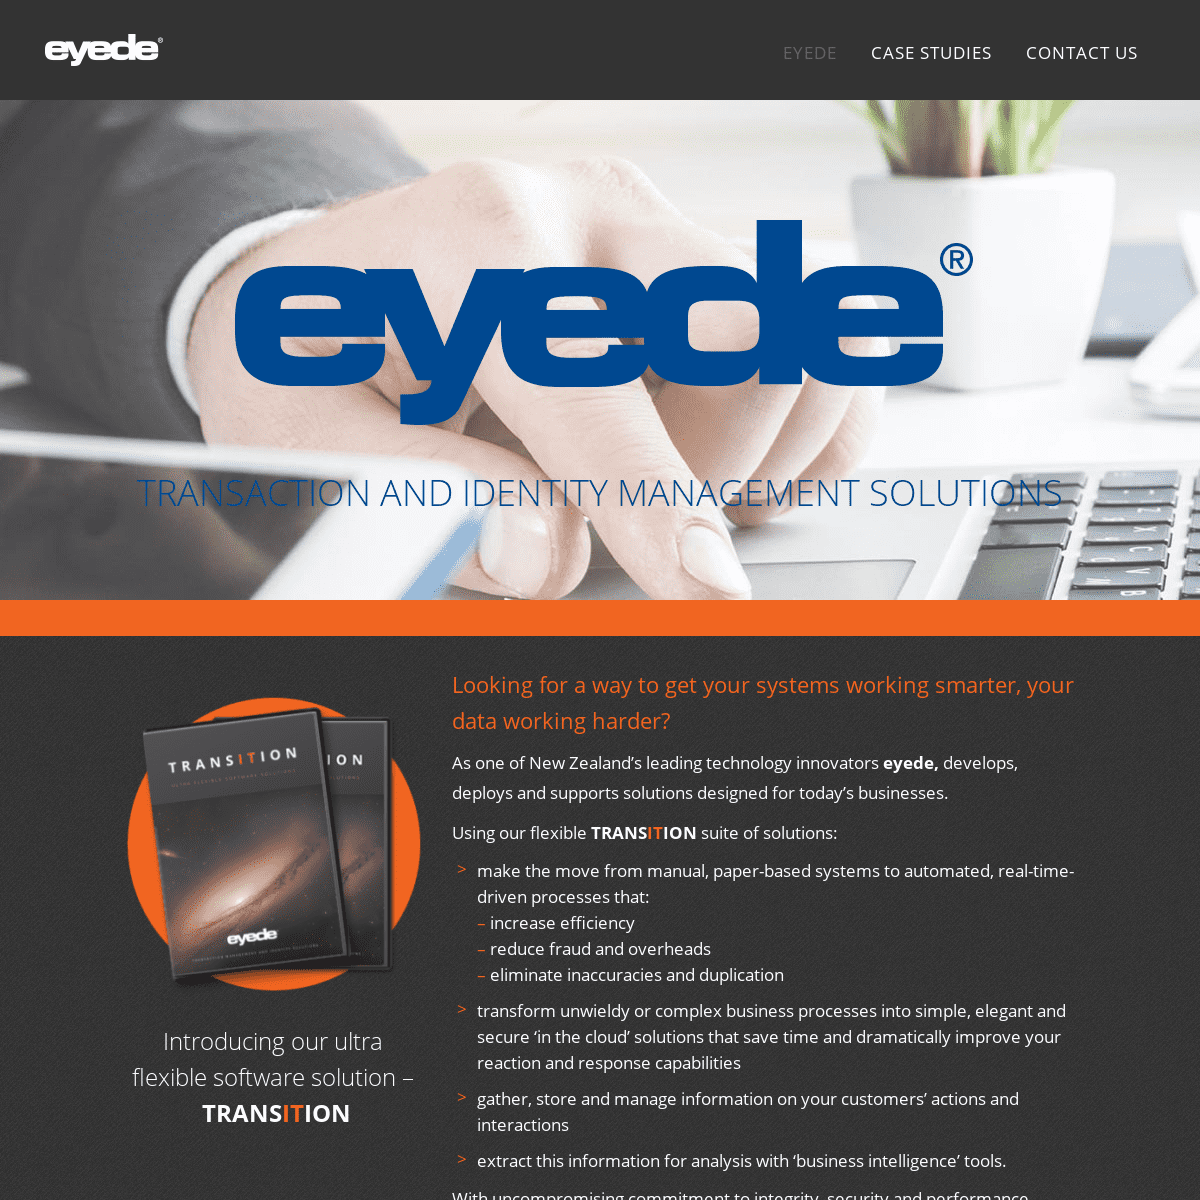 Eyede - Transaction and Identity Management Solutions